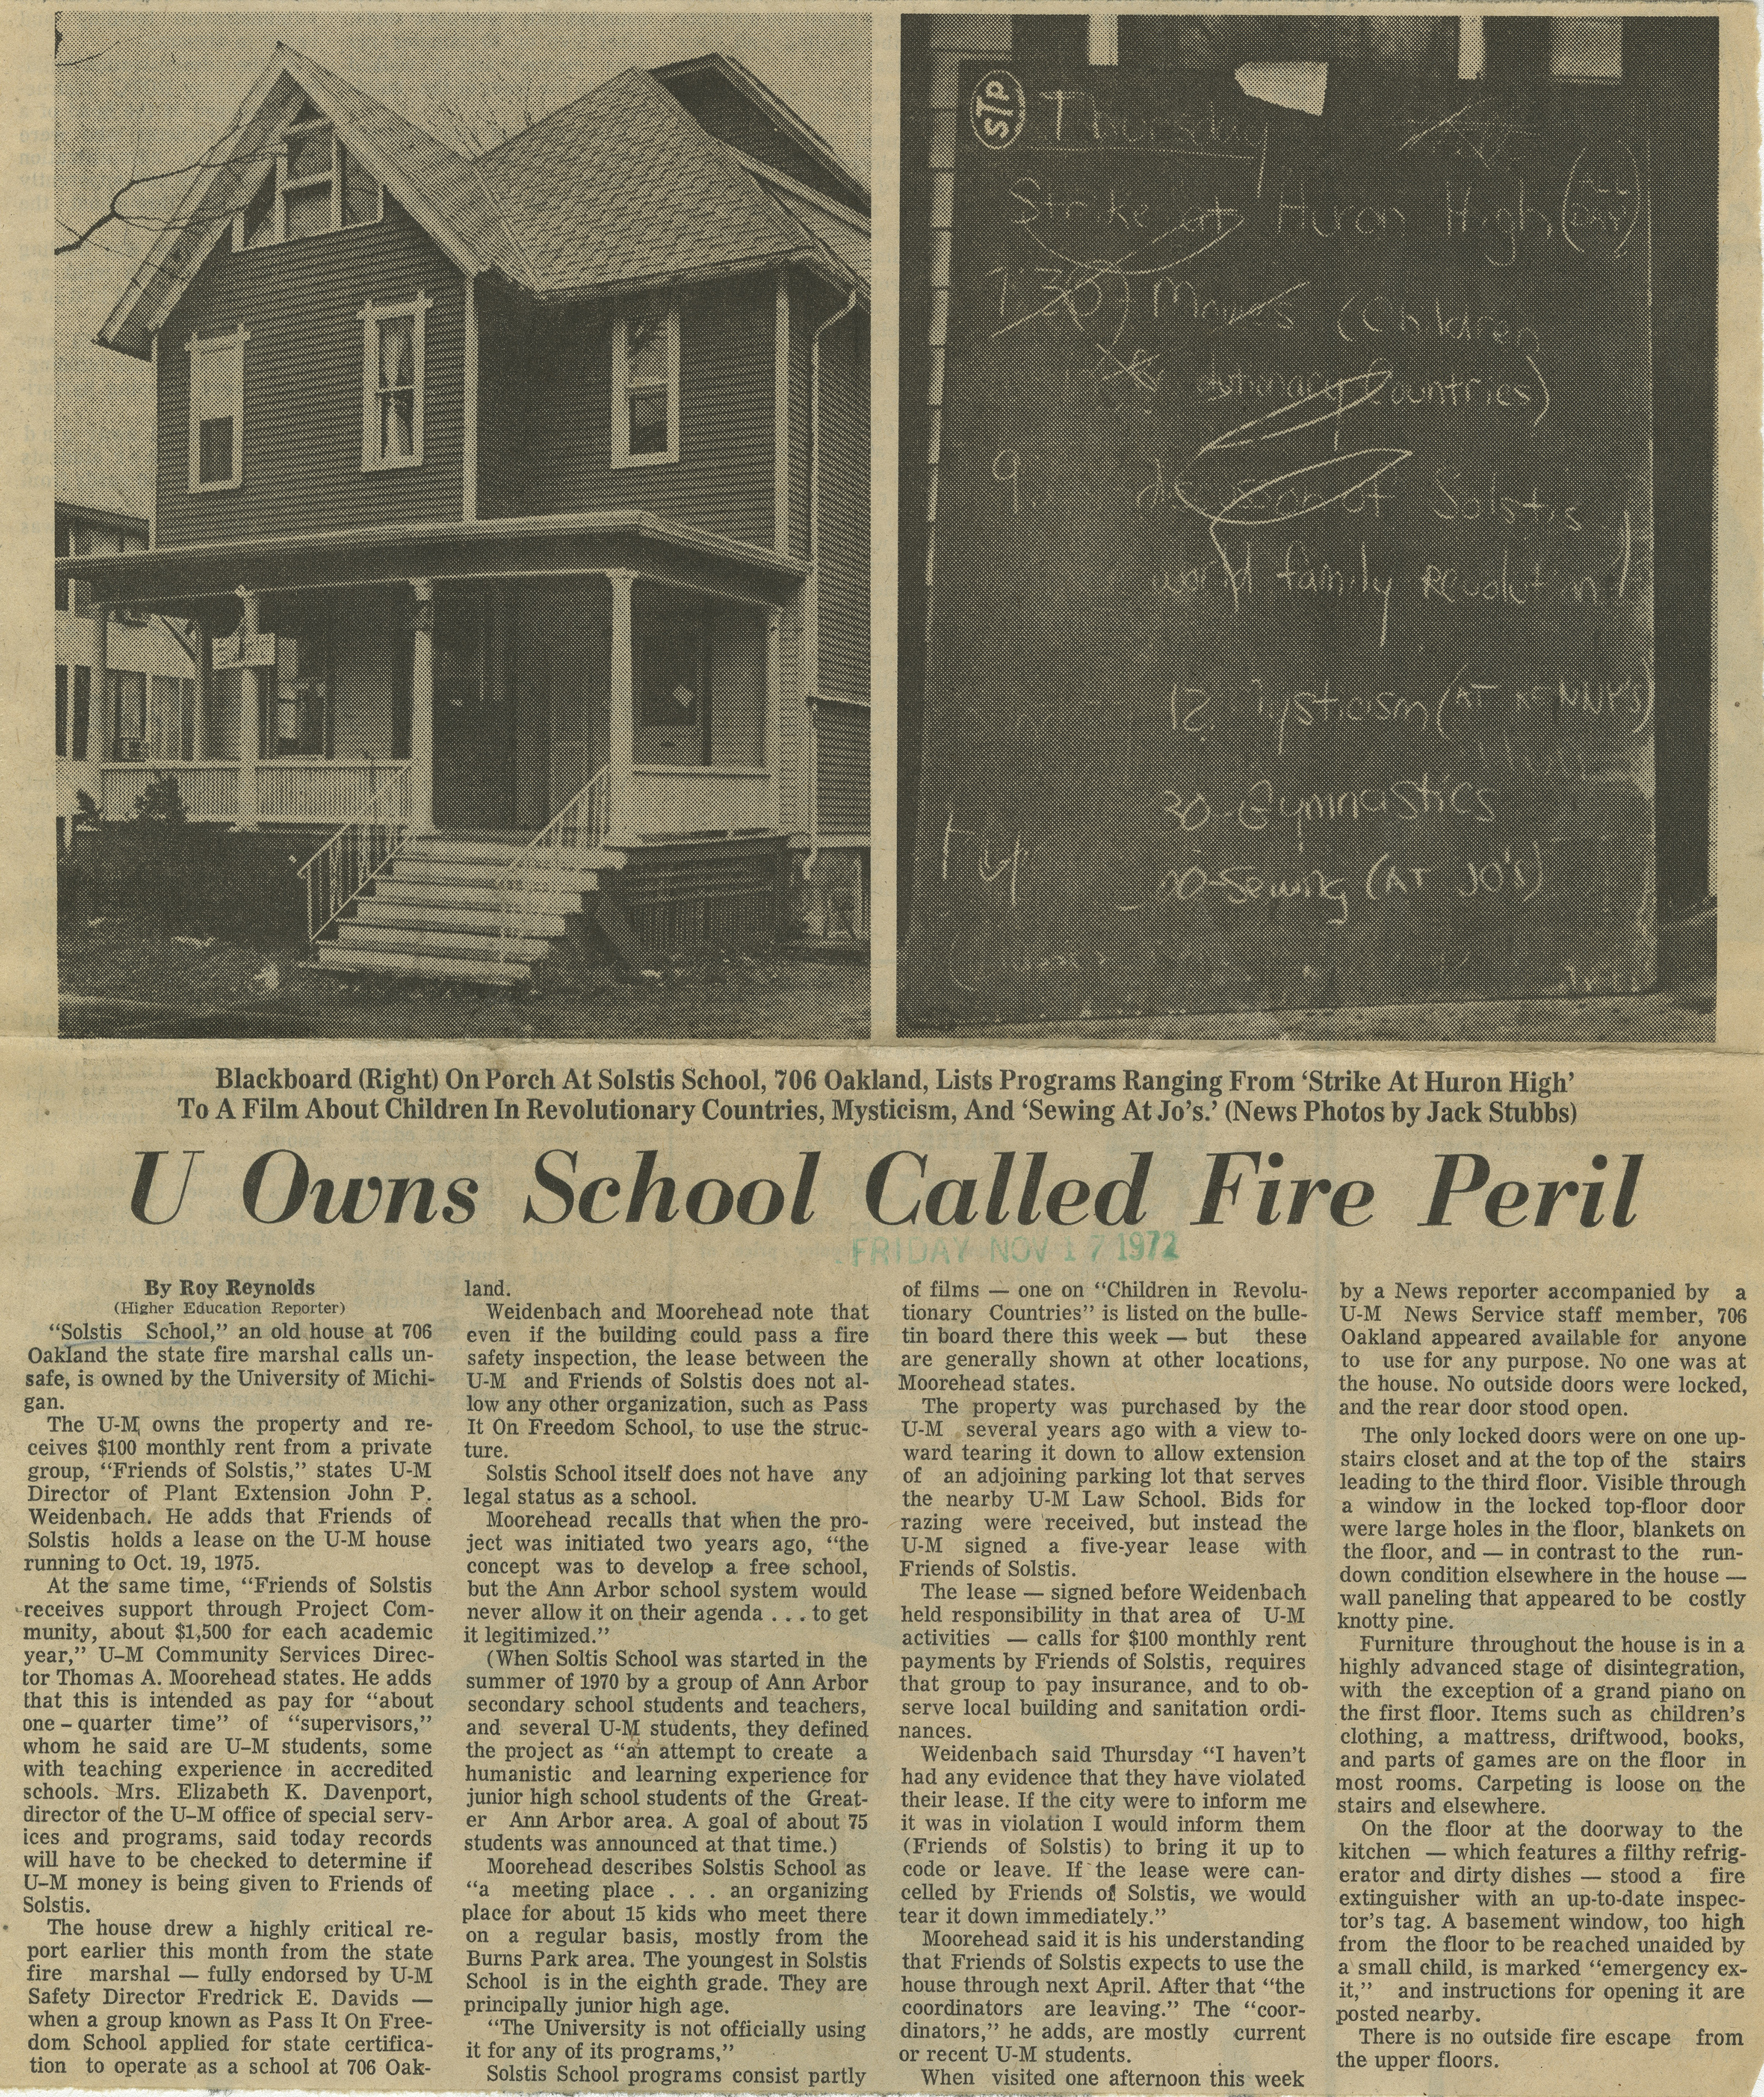 U Owns School Called Fire Peril image